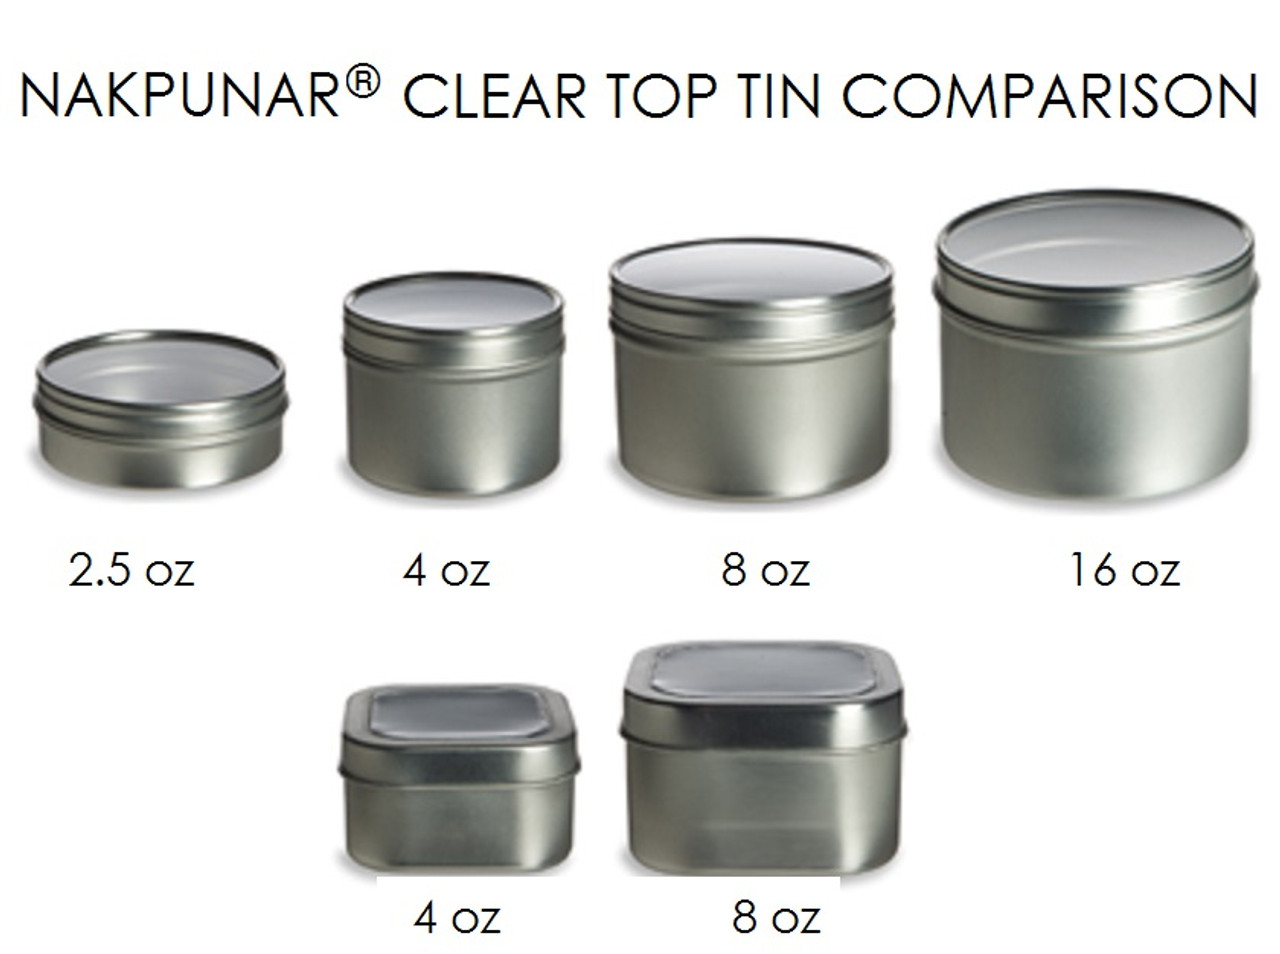 We offer tea storage in every size!  sc 1 st  Nakpunar & Set of 6 16 oz Tin Container w/ Clear Top Cover - NAKPUNAR